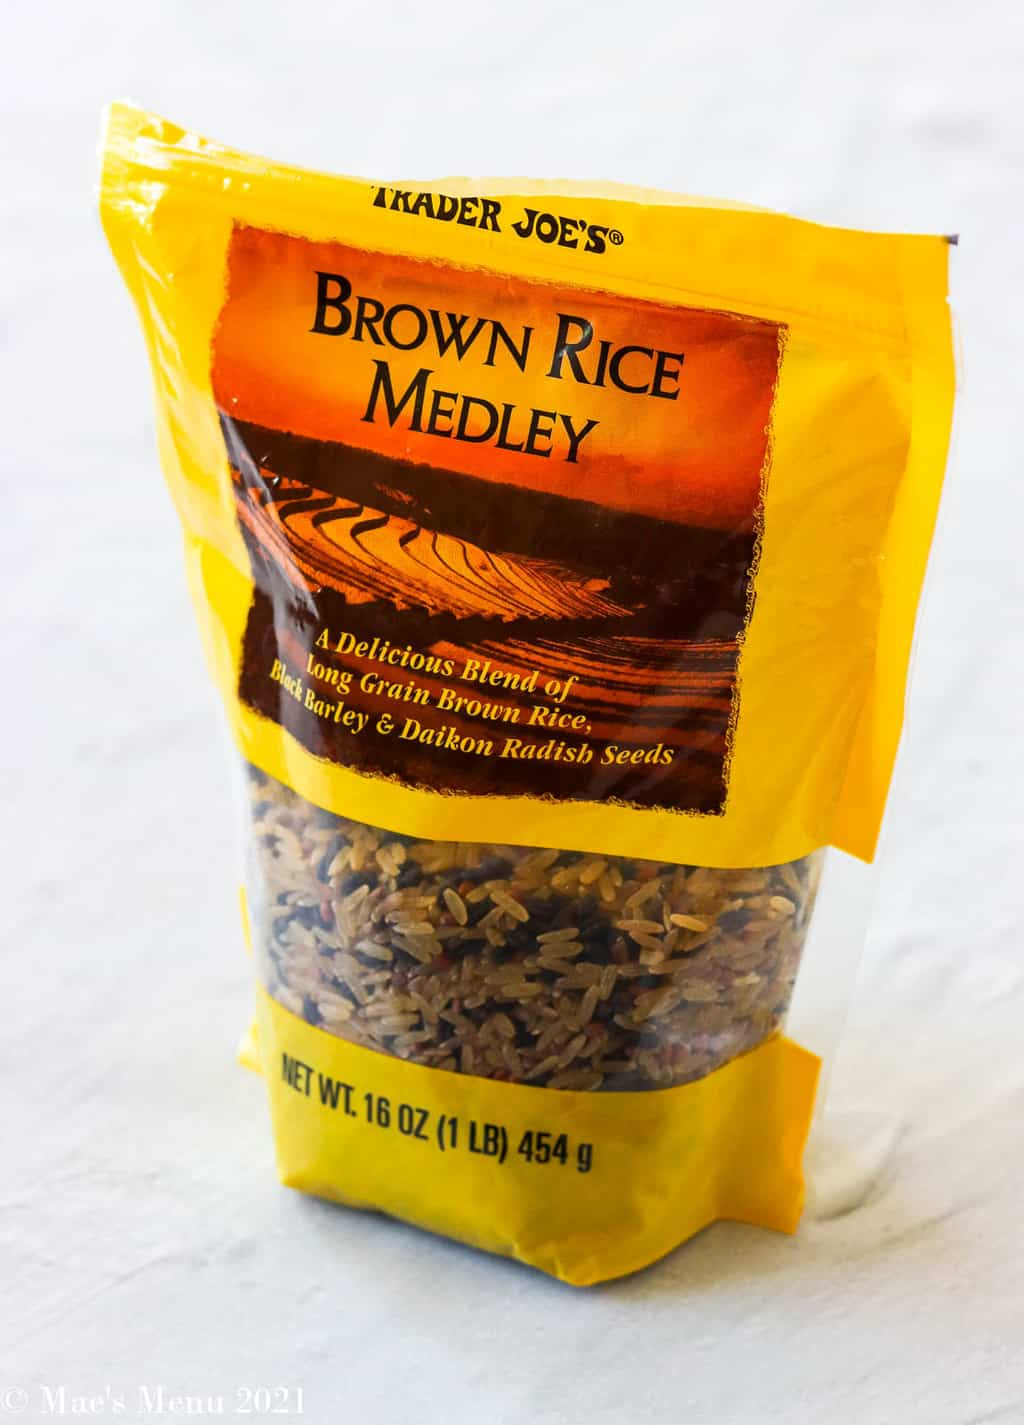 A package of Trader Joe's brown rice medley